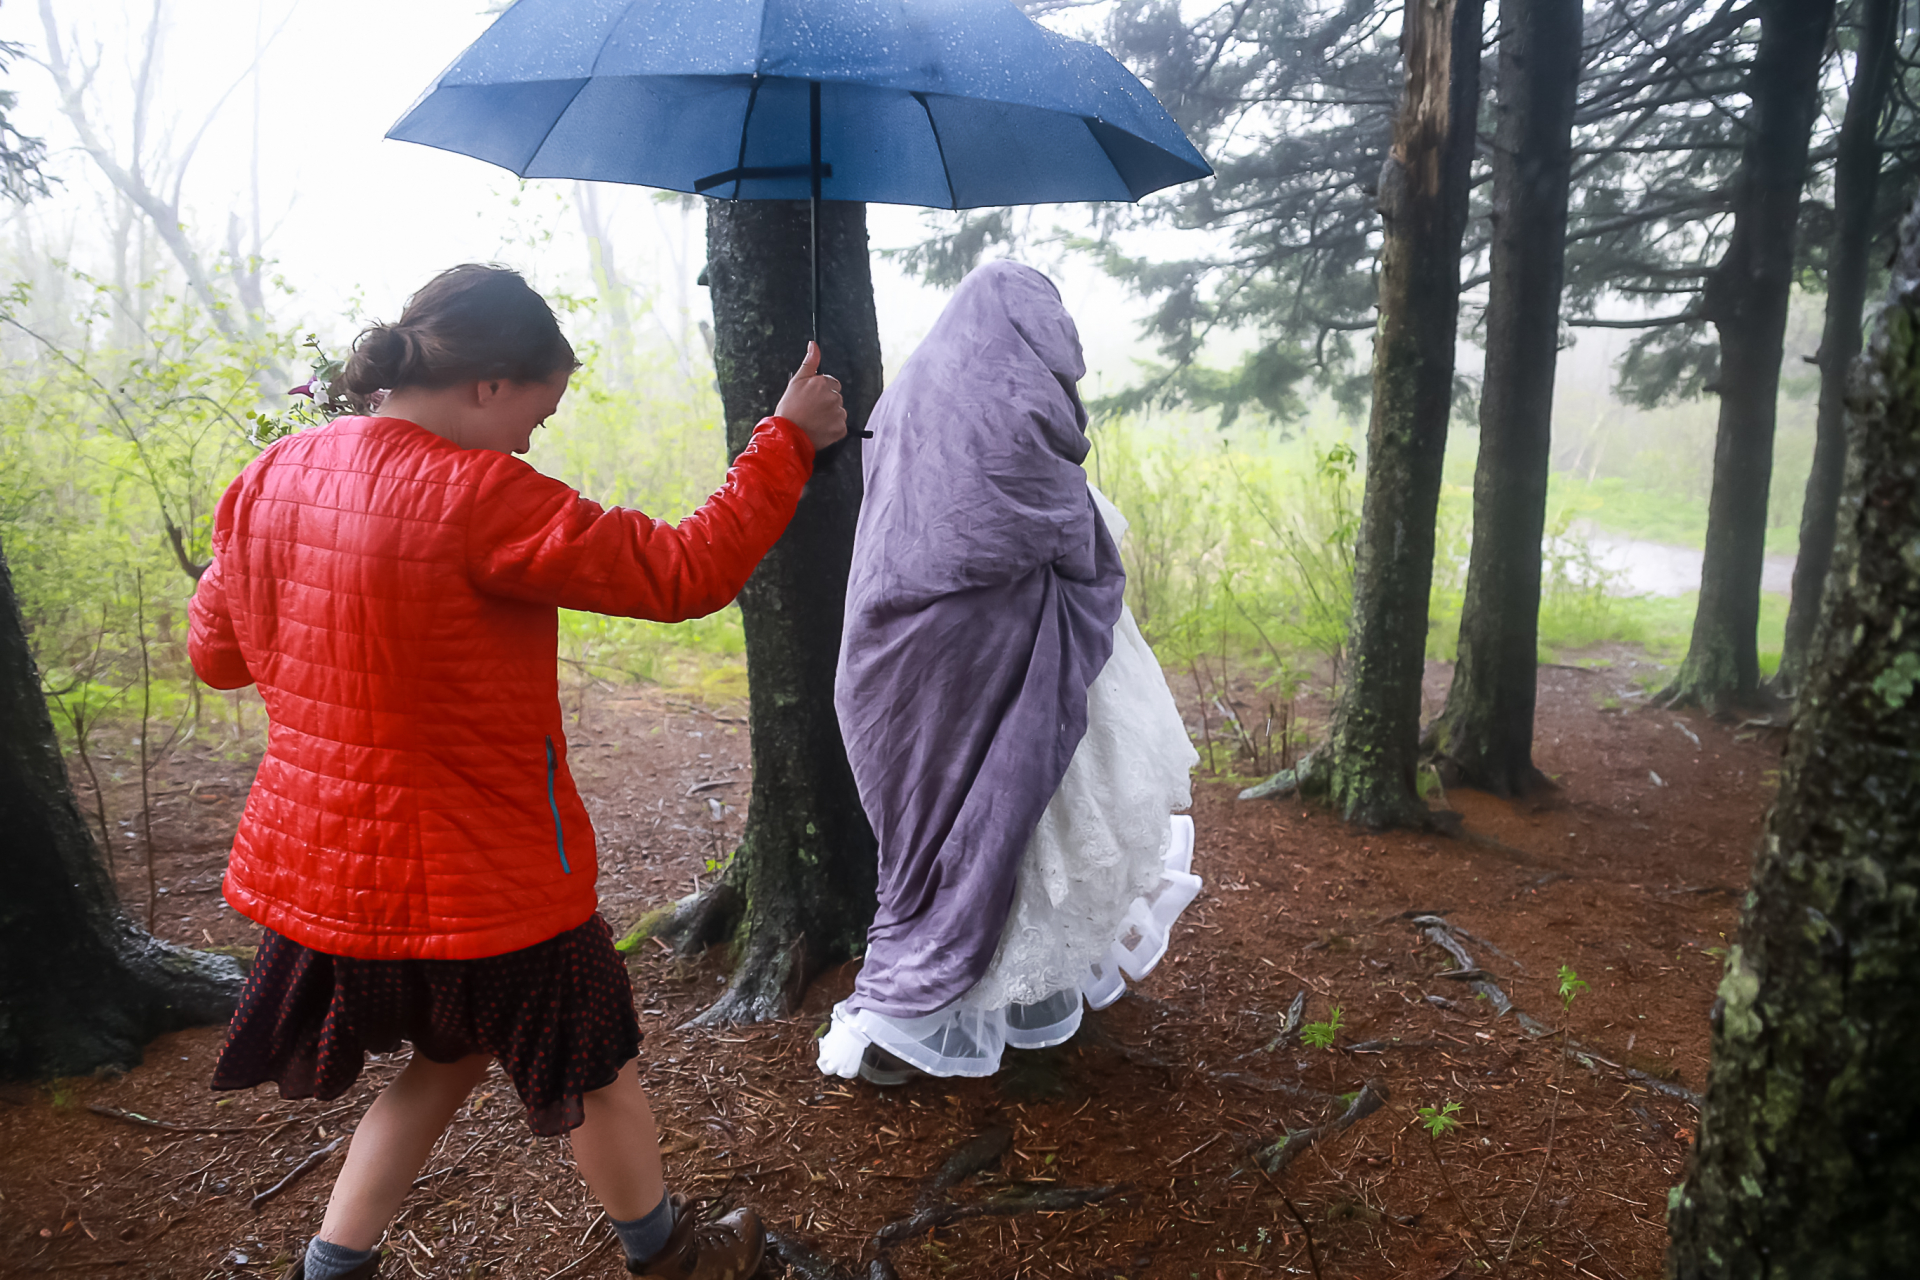 North Carolina Outdoor Elopement Photo | The maid of honor helps the bride stay dry from the rain before her wedding ceremony